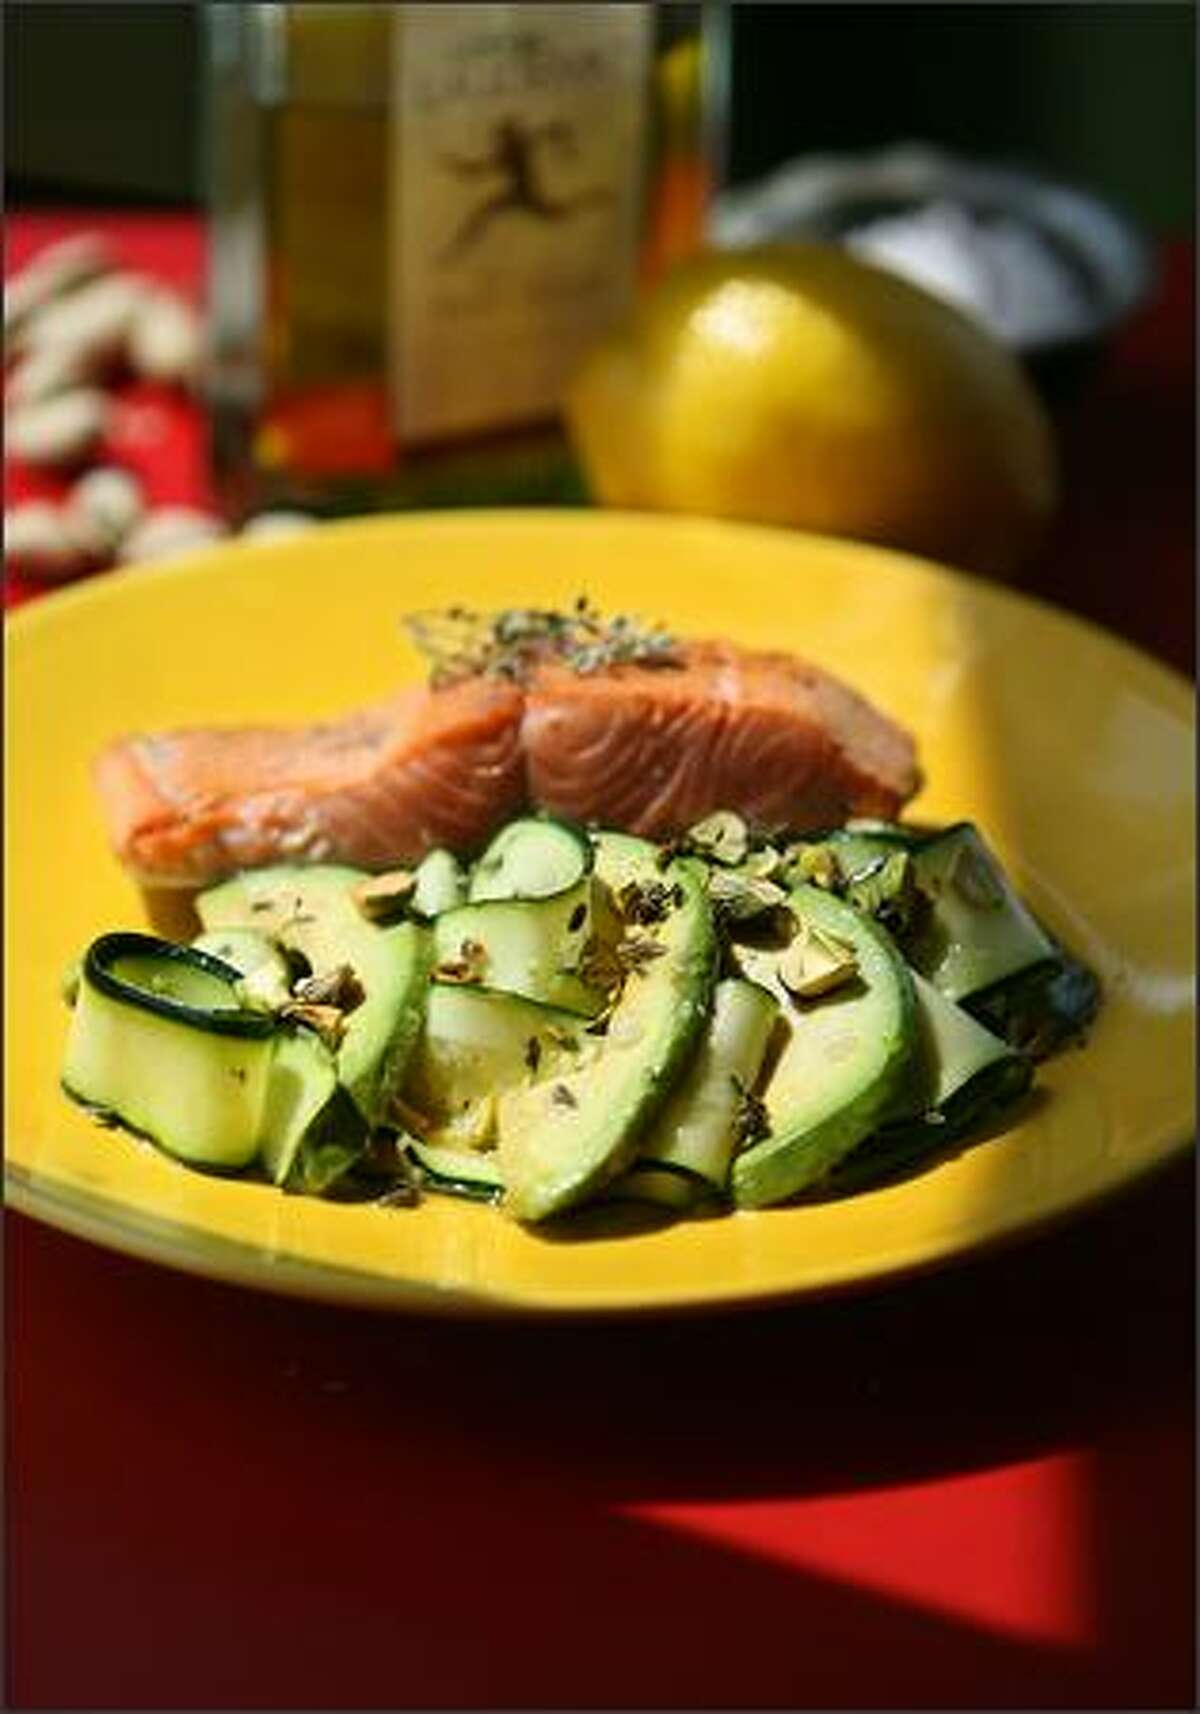 Zucchini Carpaccio With Avocado, Lemon Thyme and Pistachio Oil is served with a side of grilled salmon.